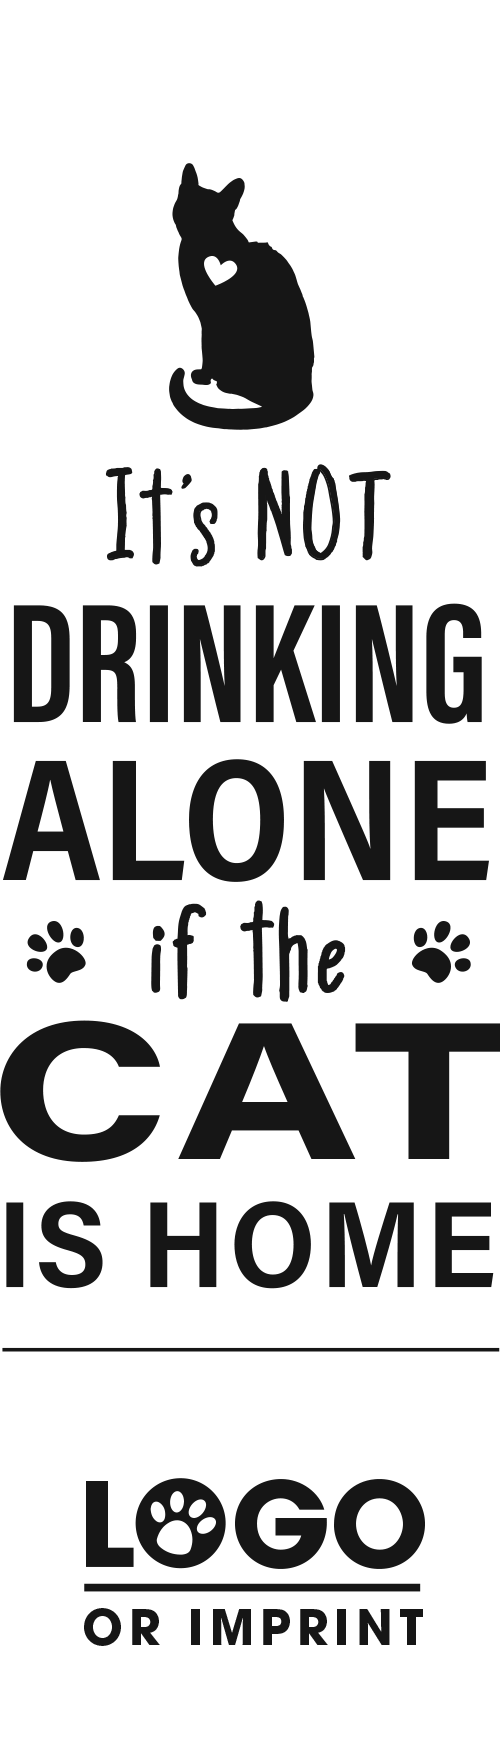 Not Drinking Alone-CAT thumbnail